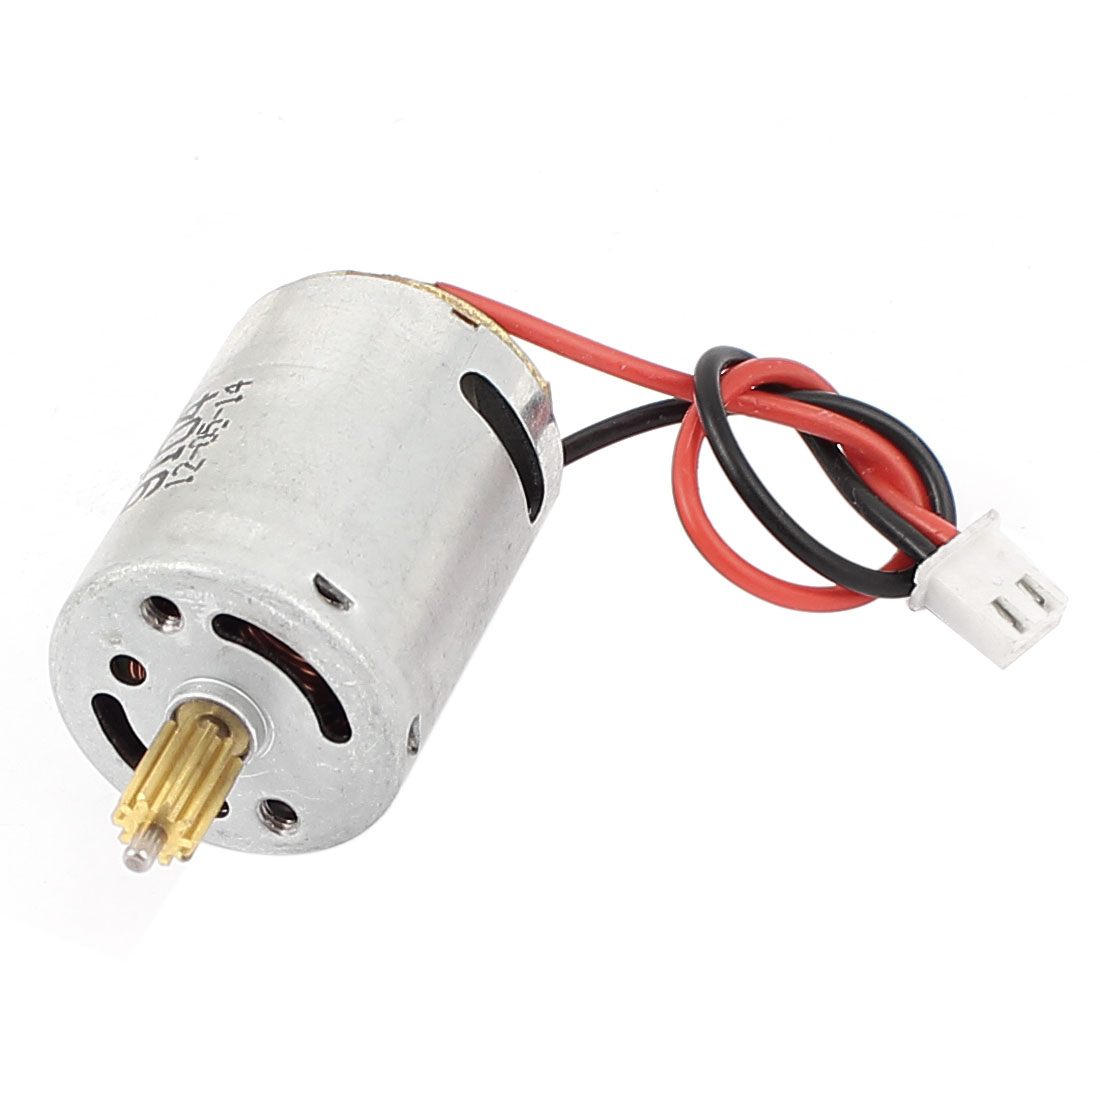 DC 7.4V 38500RPM Torque Magnetic Mini Electric Motor for DIY Toys